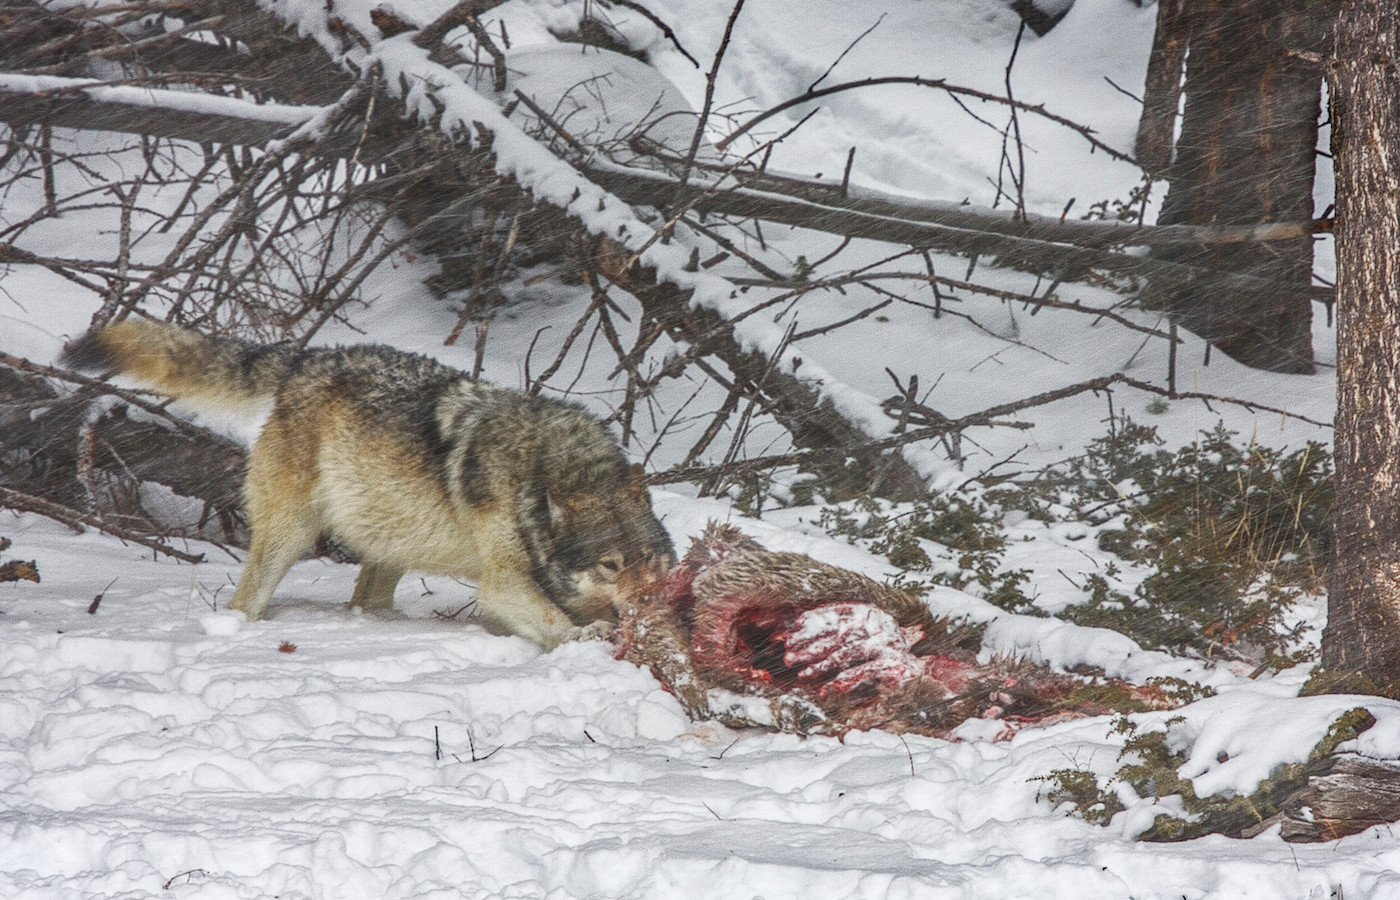 18 WOLF FEEDING IN BLIZZARD by Carole Lewis